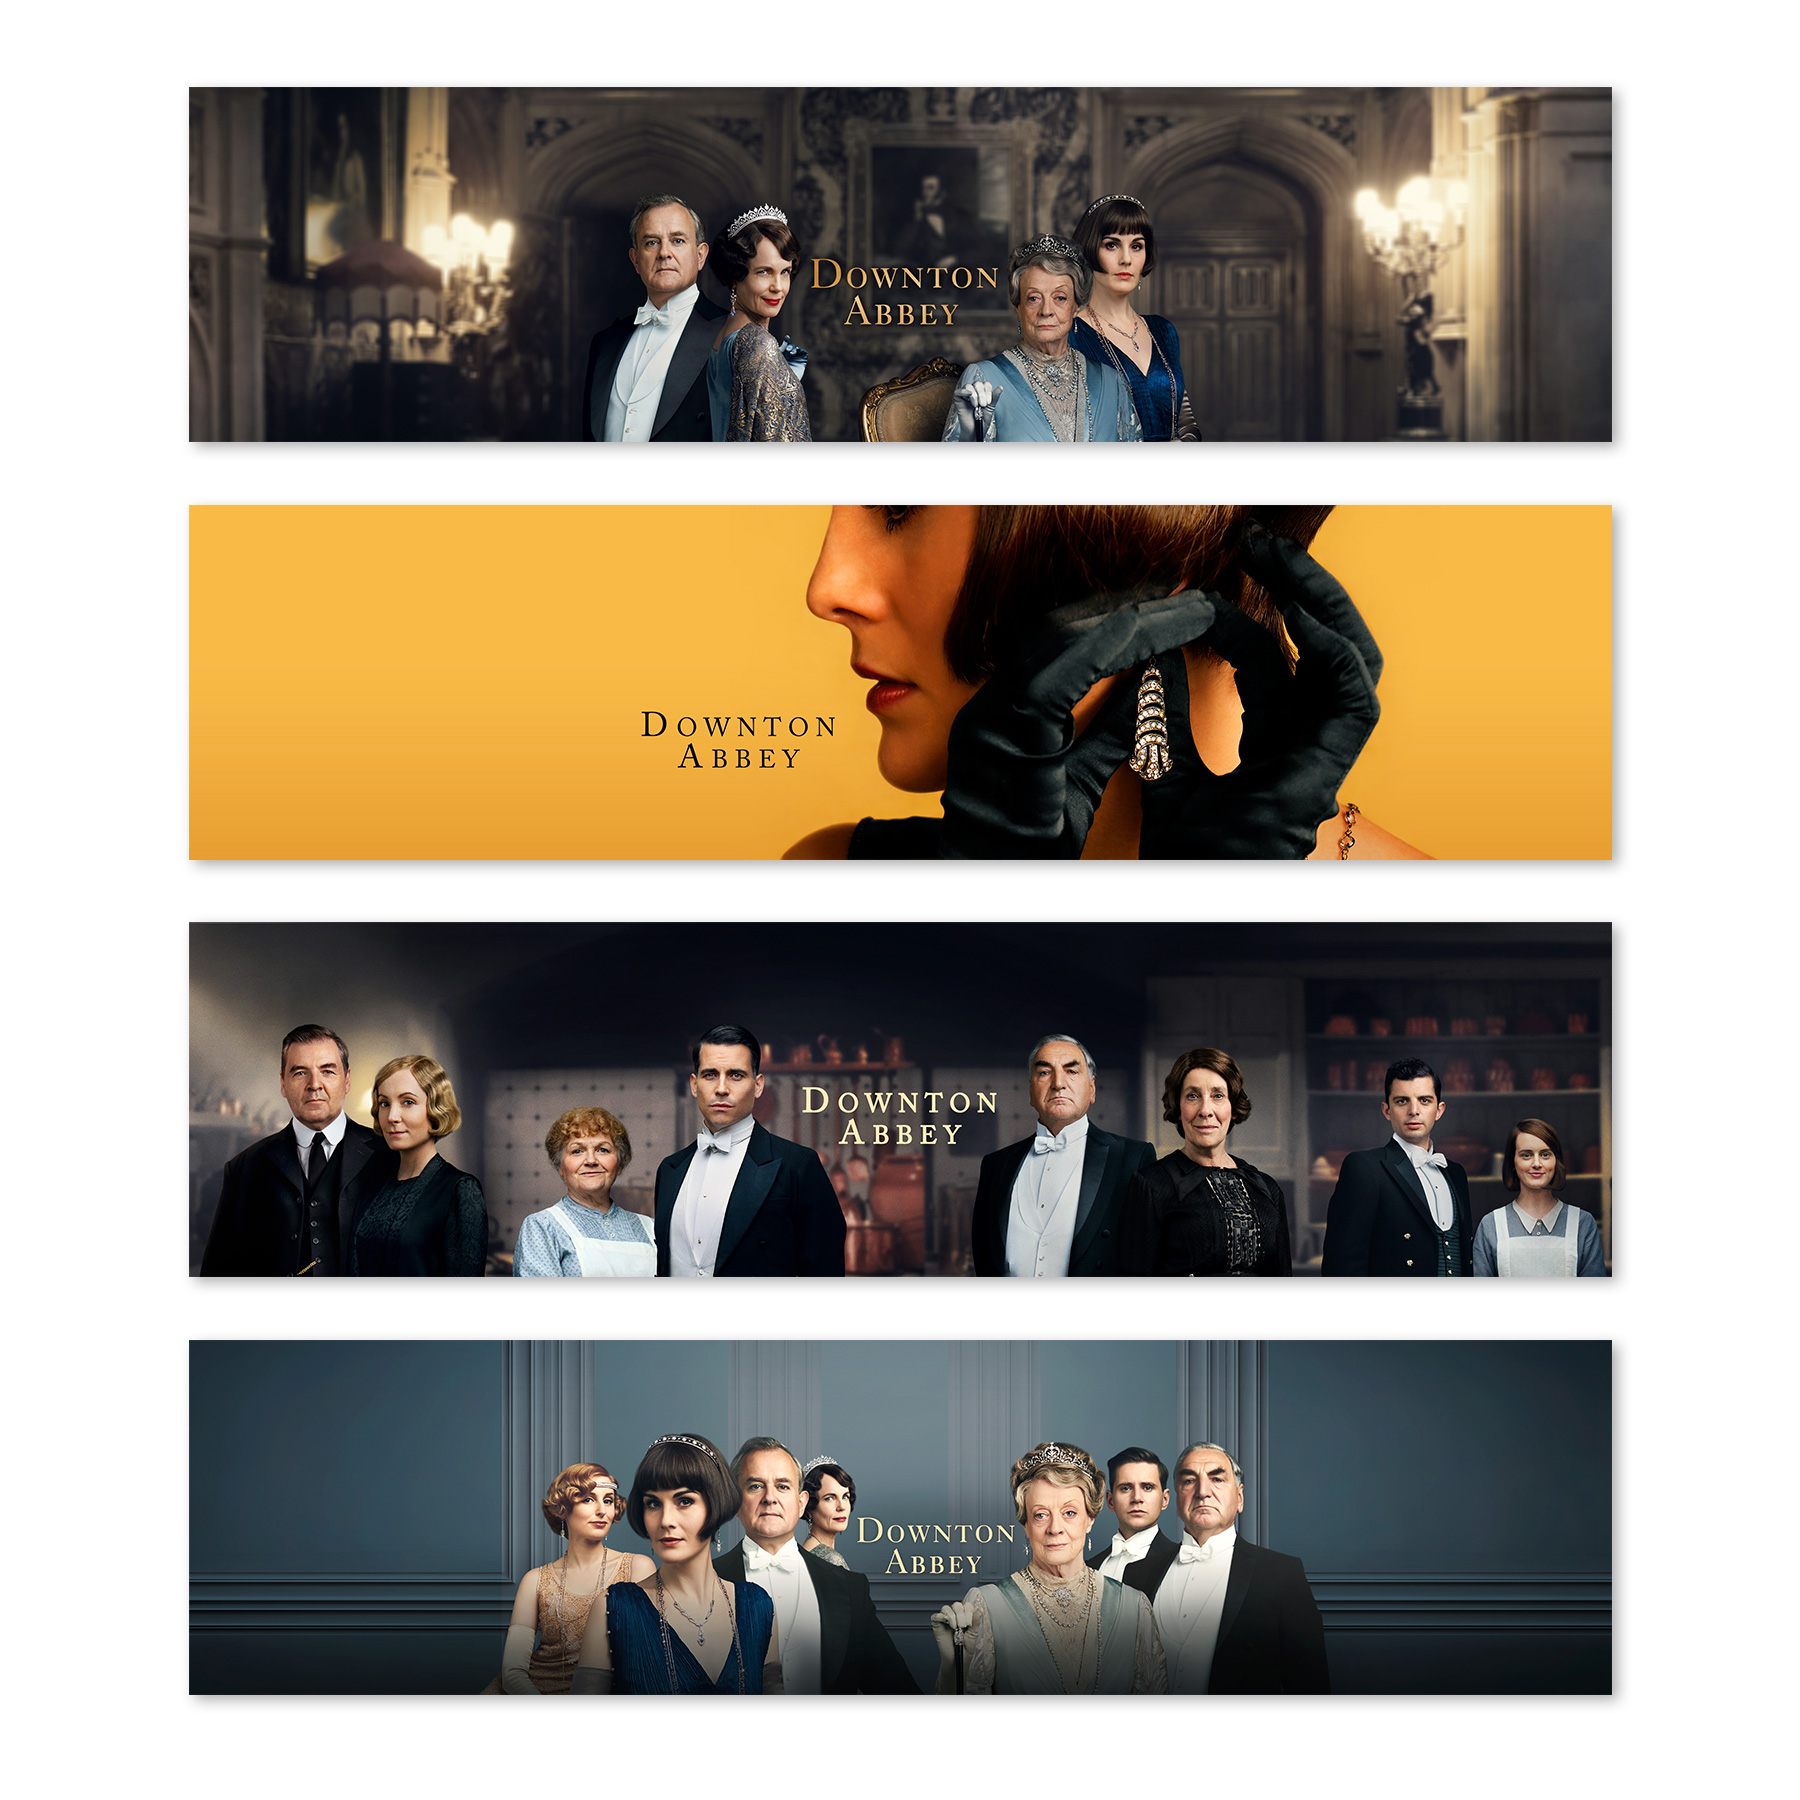 Downton Abbey iTunes Ads